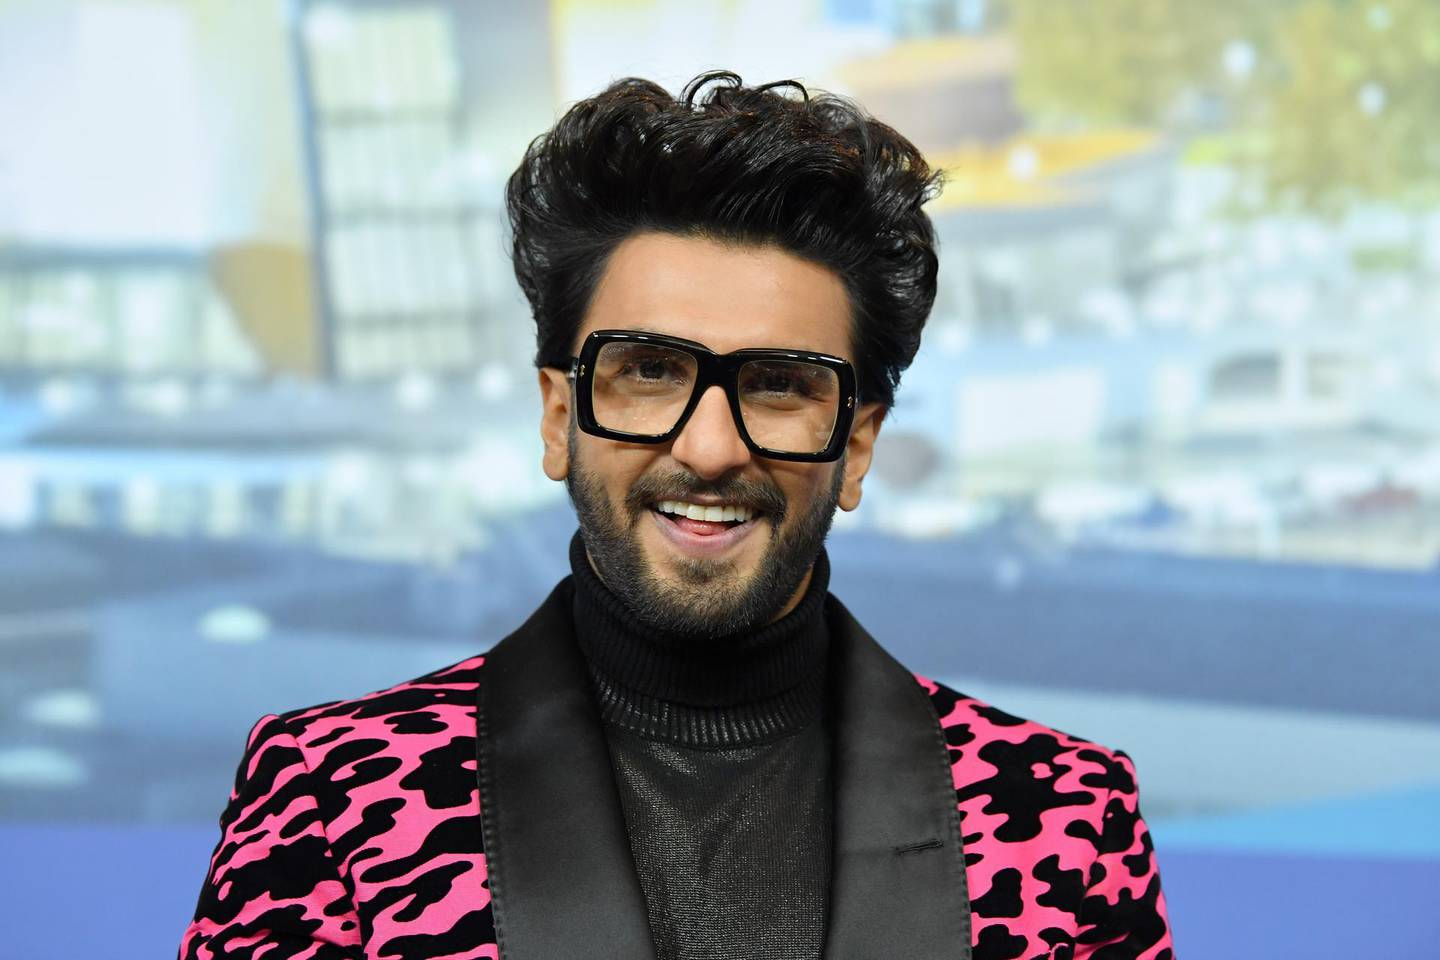 """BERLIN, GERMANY - FEBRUARY 09: Ranveer Singh attends the """"Gully Boy"""" press conference during the 69th Berlinale International Film Festival Berlin at Grand Hyatt Hotel on February 09, 2019 in Berlin, Germany. (Photo by Pascal Le Segretain/Getty Images)"""